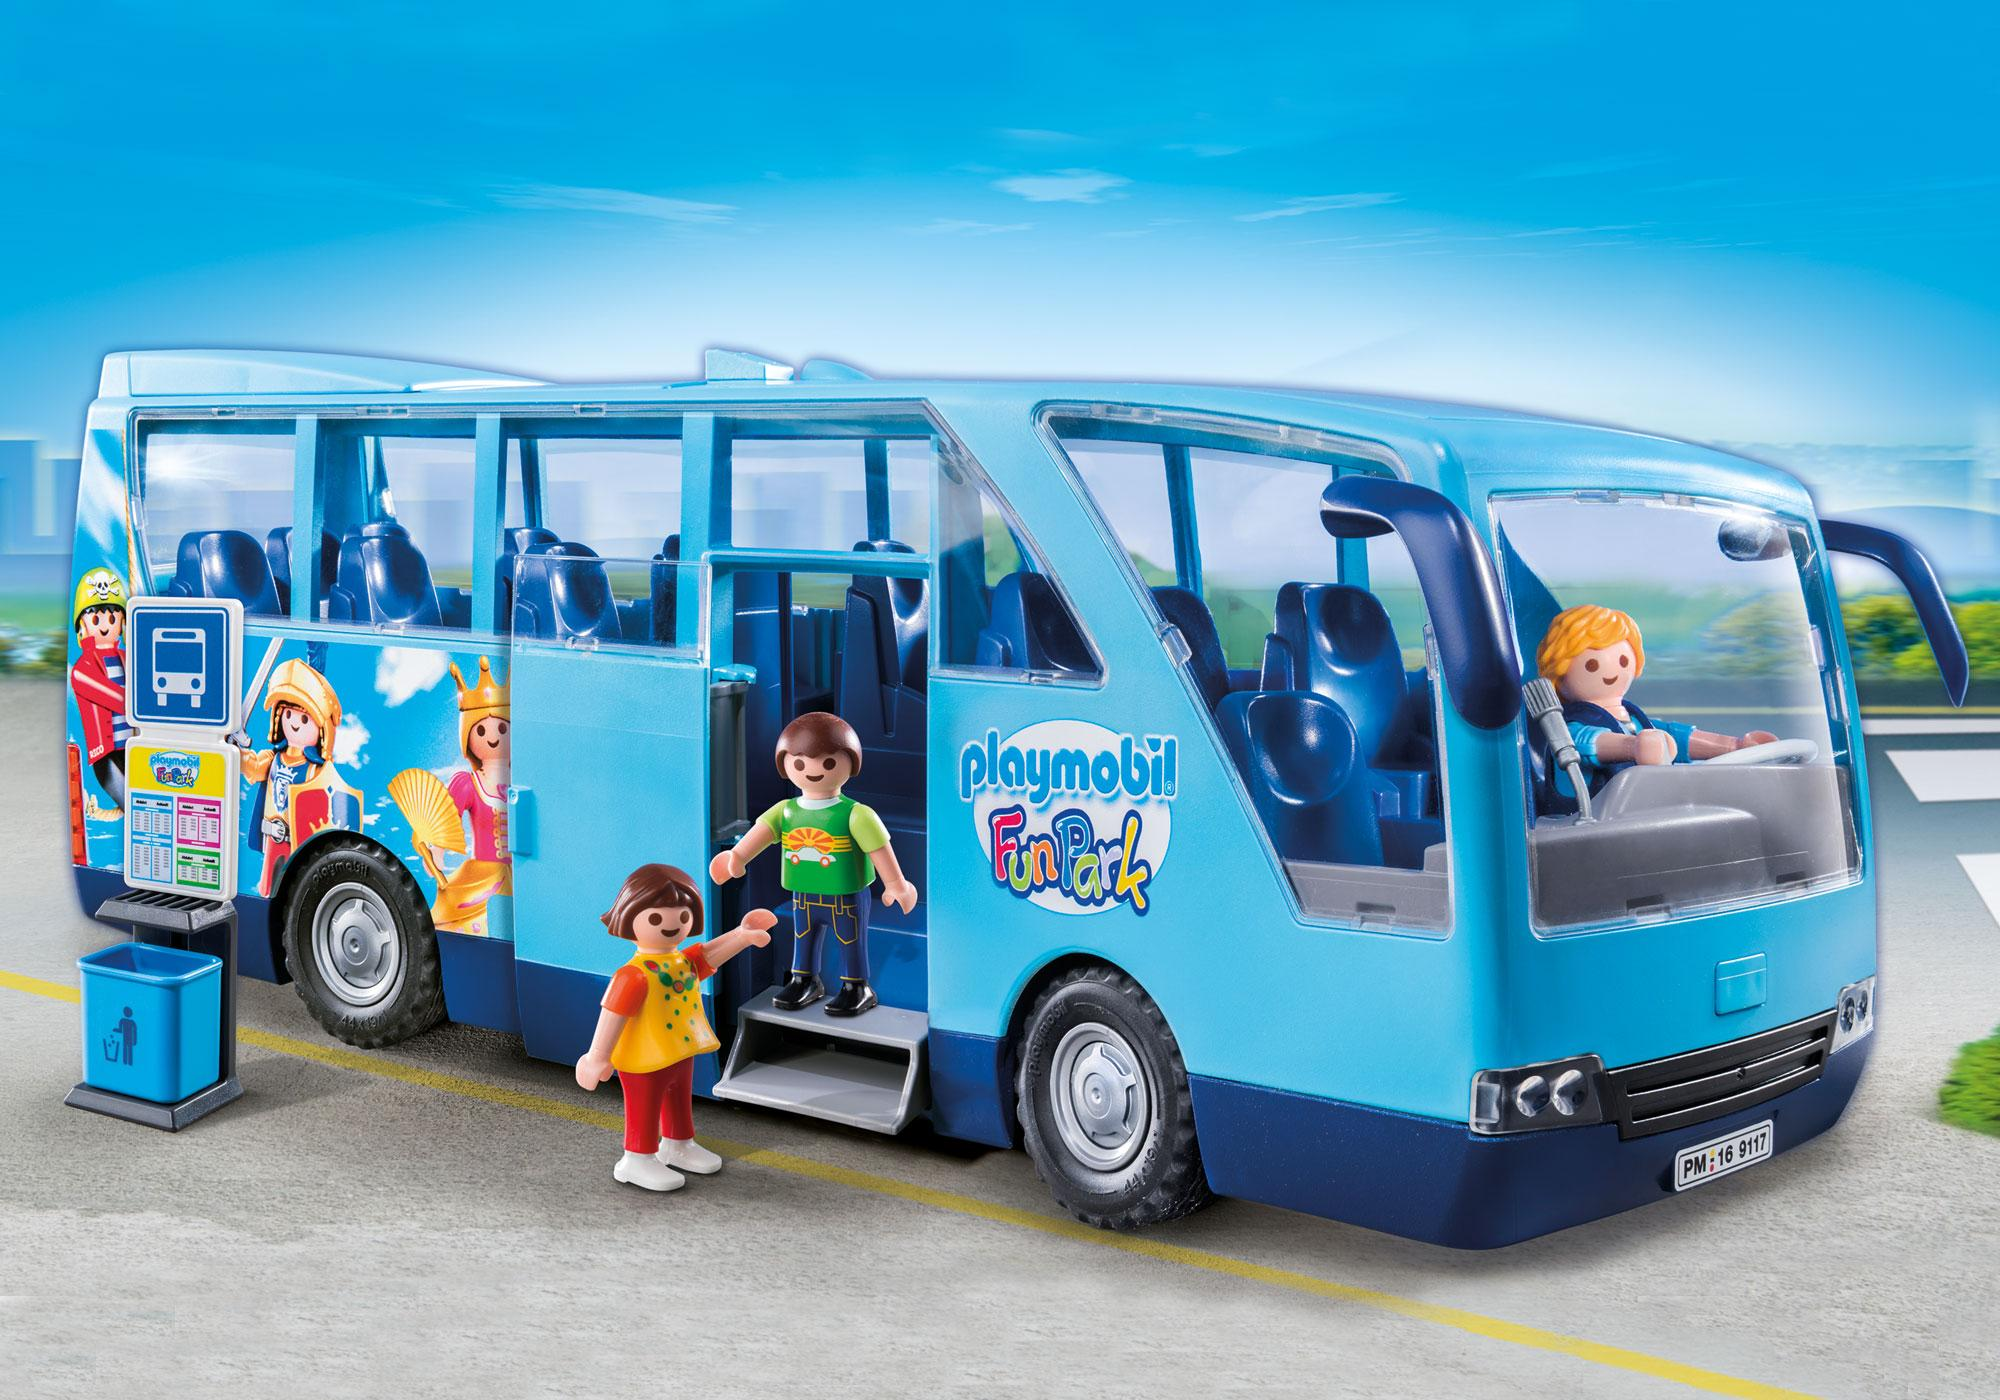 http://media.playmobil.com/i/playmobil/9117_product_detail/PLAYMOBIL-FunPark Transporte Escolar